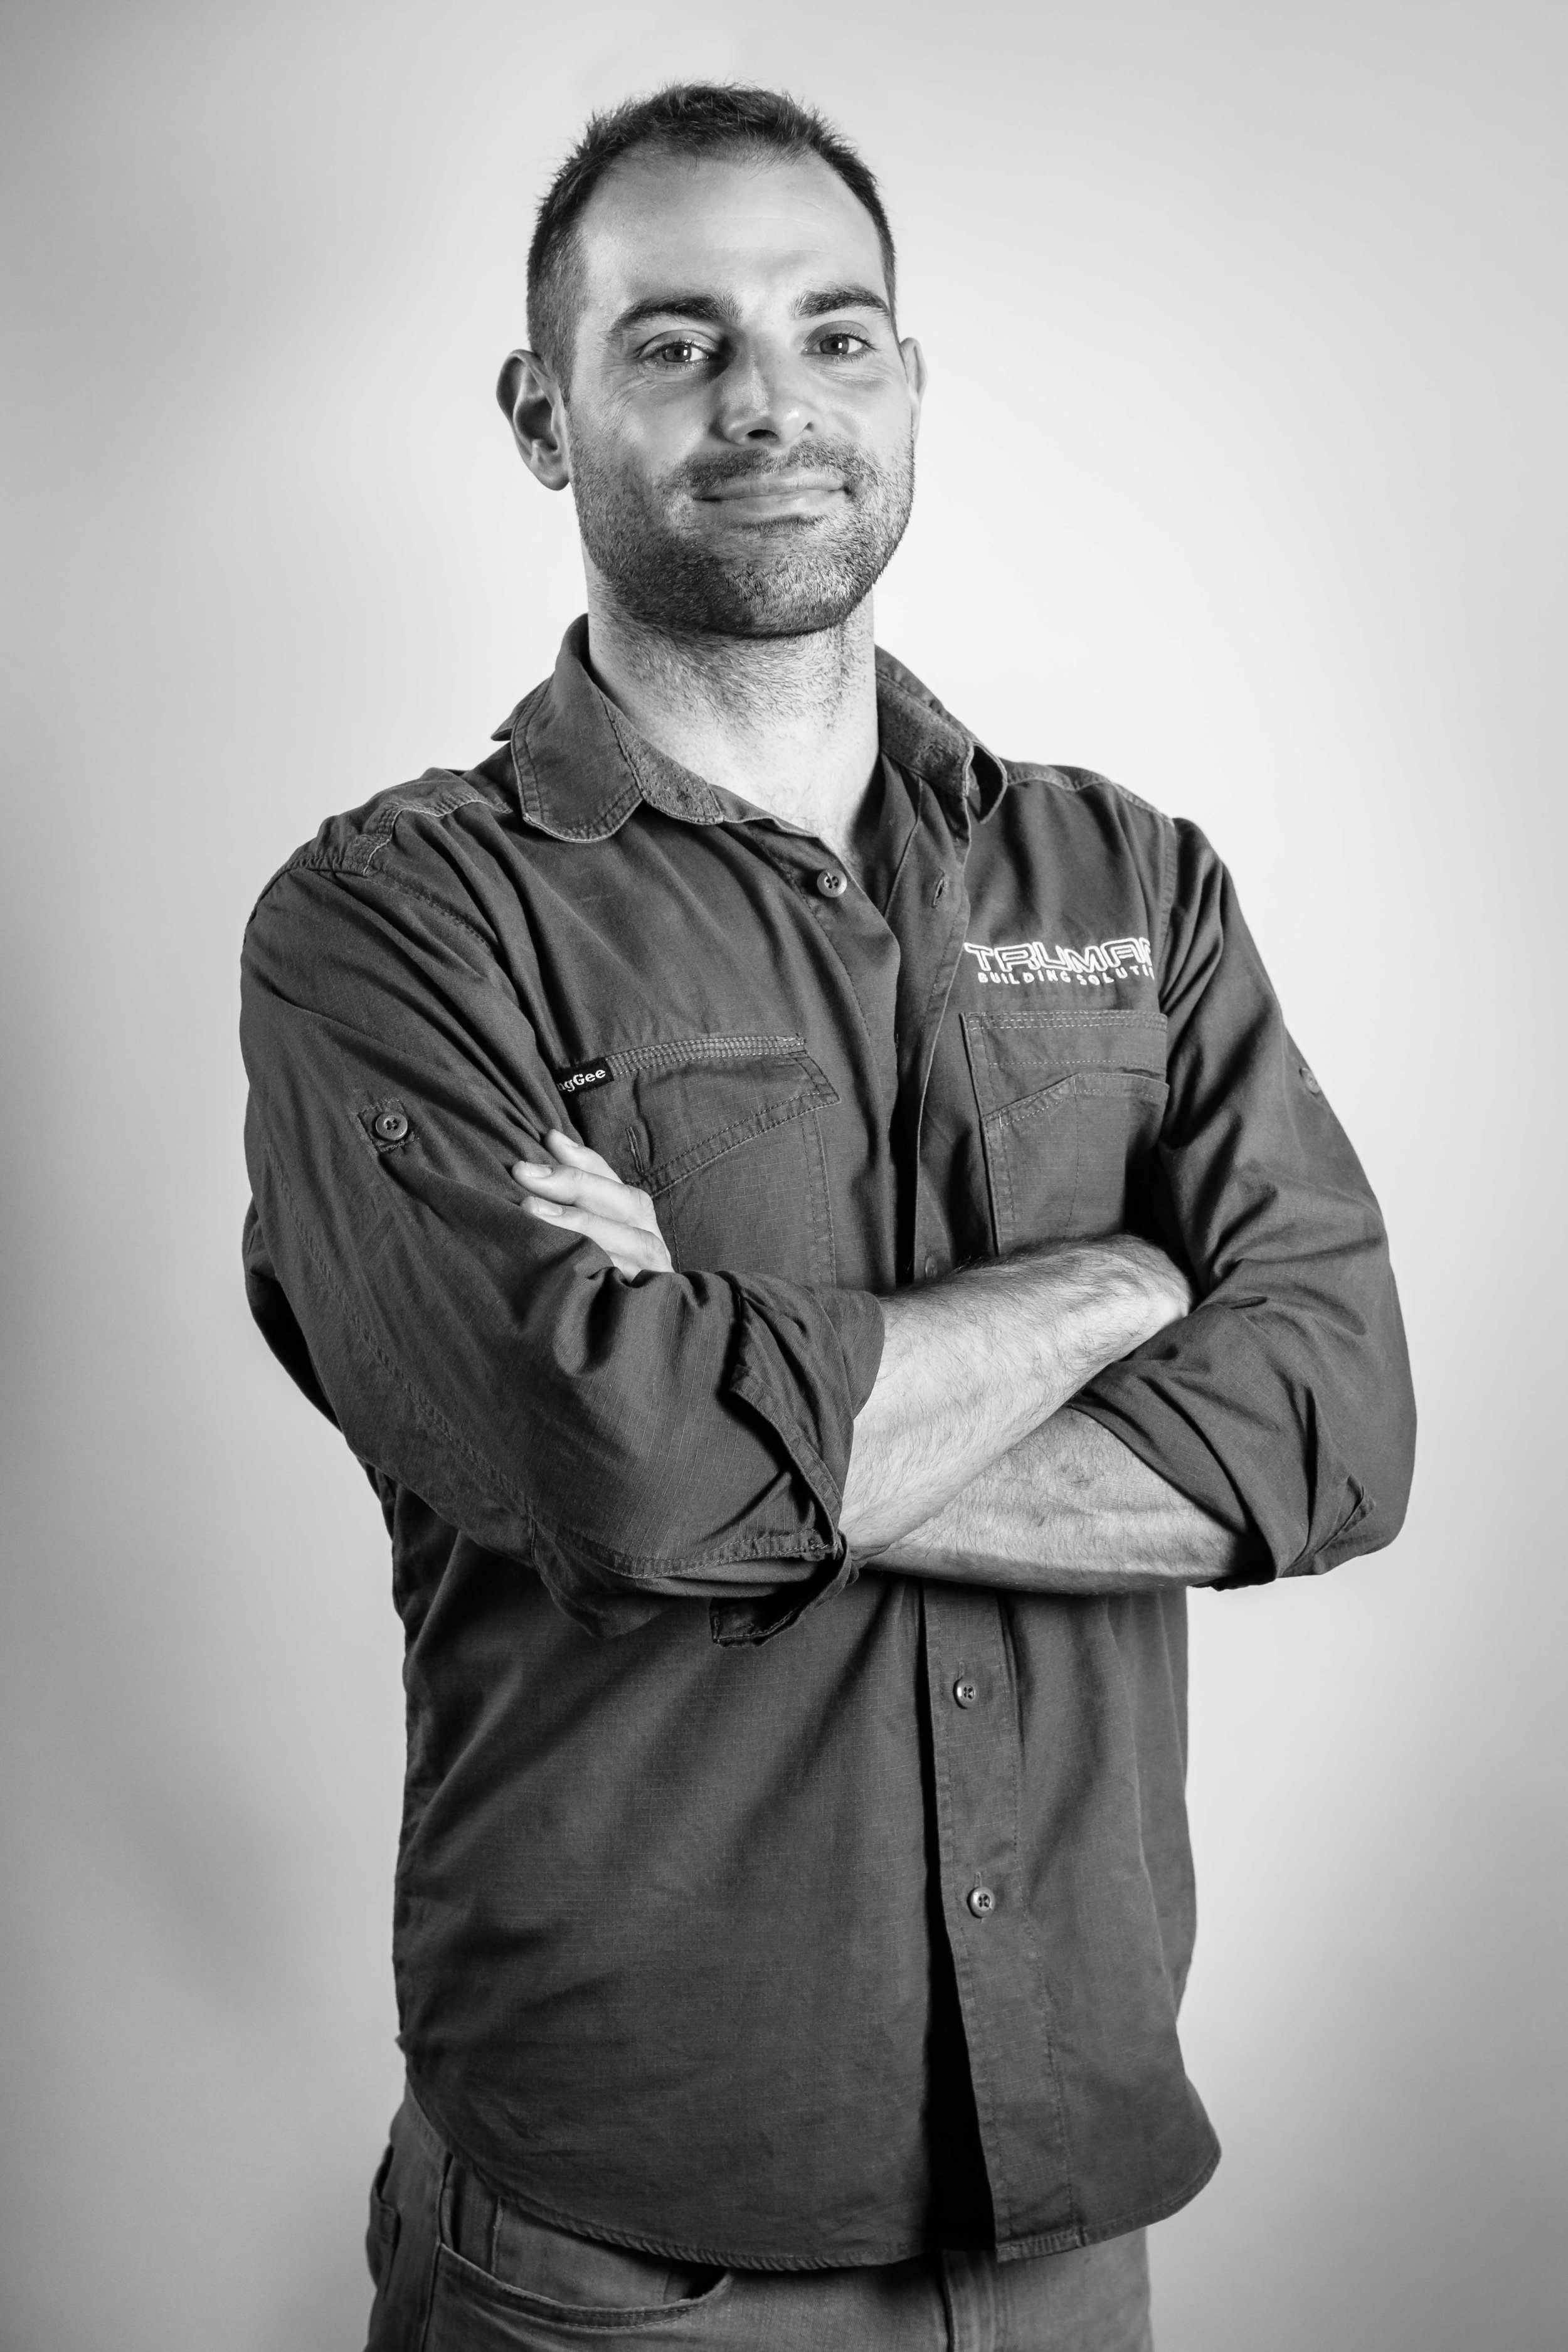 JAMES BOURNAZOS    Site Foreman/Carpenter   James is a highly experienced, motivated and passionate site manager whose led many of our award winning projects. As a qualified carpenter, he specialises in high-end residential builds with his superior craftsmanship.